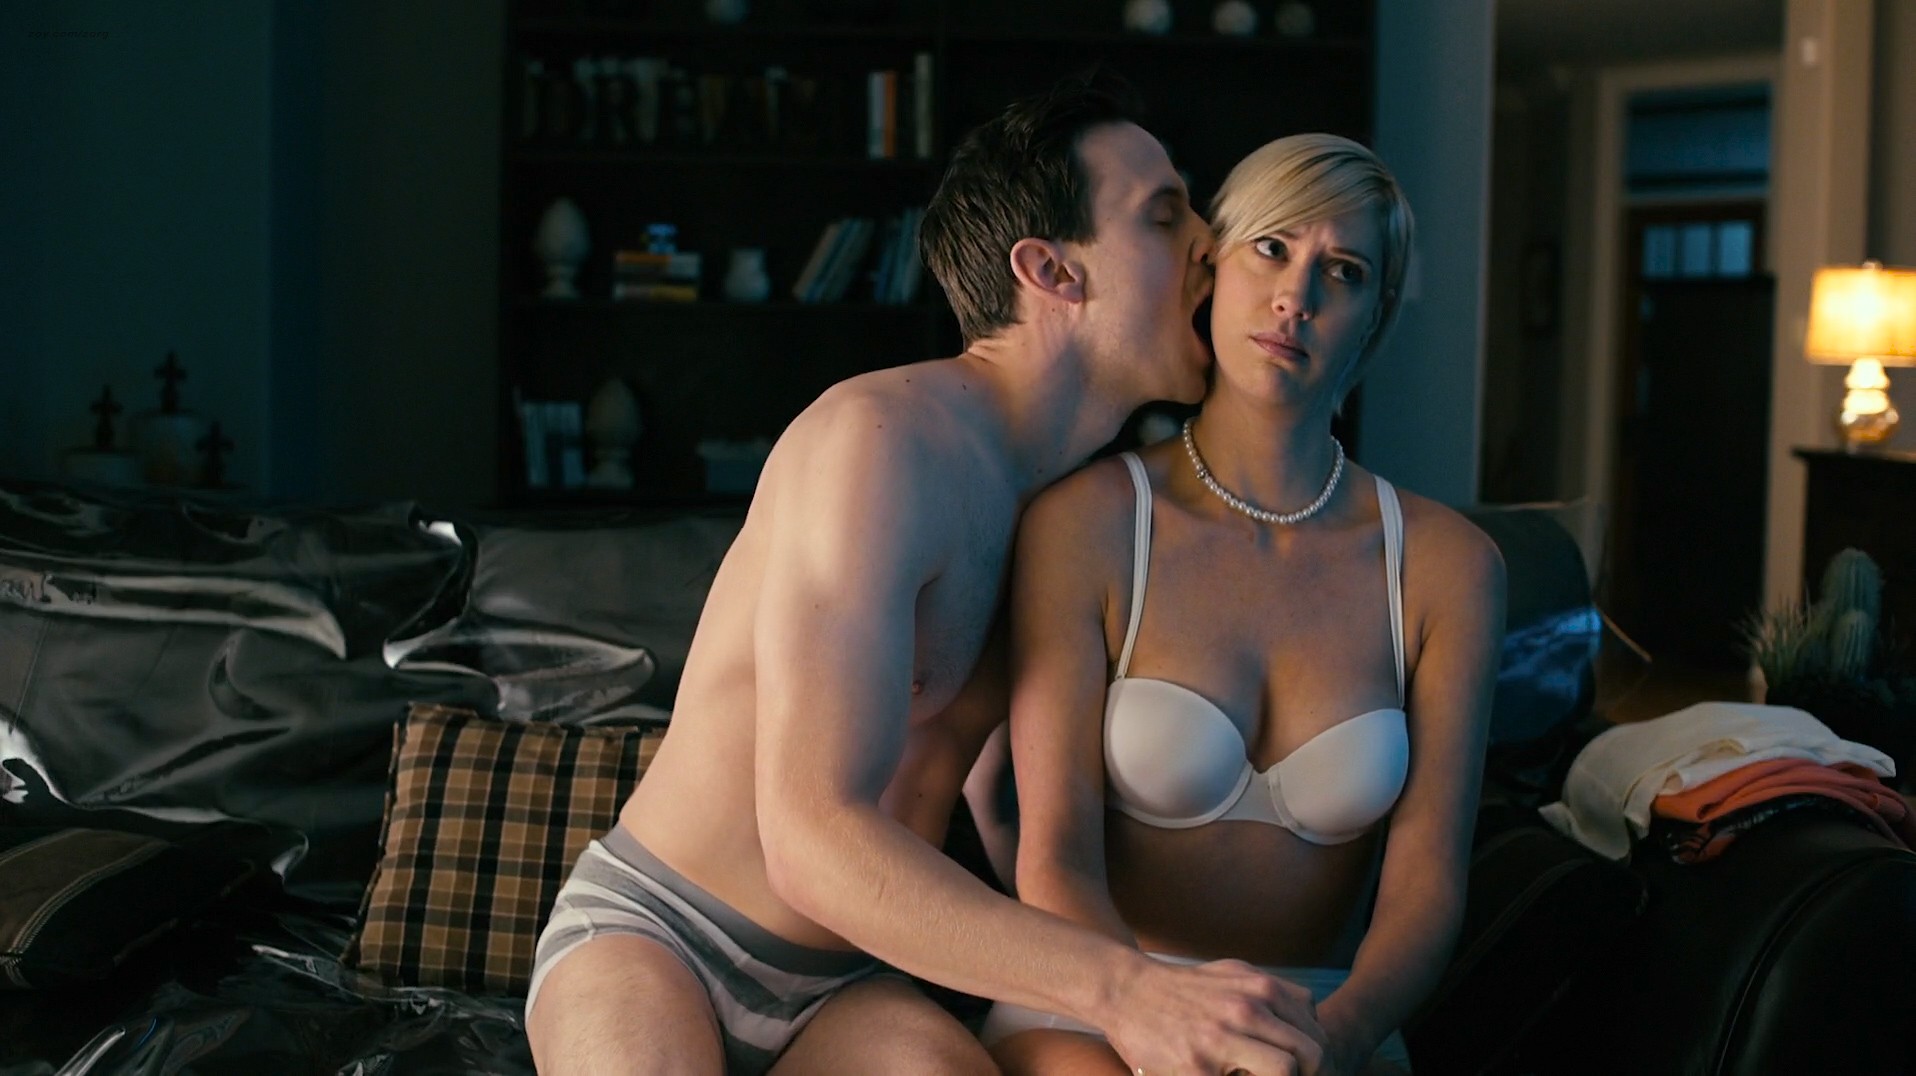 Lauren Lee Smith hot sex Jewel Staite hot Zoe Cleland nude and Katharine Isabelle - How To Plan An Orgy In A Small Town (CA-2015) HD 1080p WEB-DL (4)